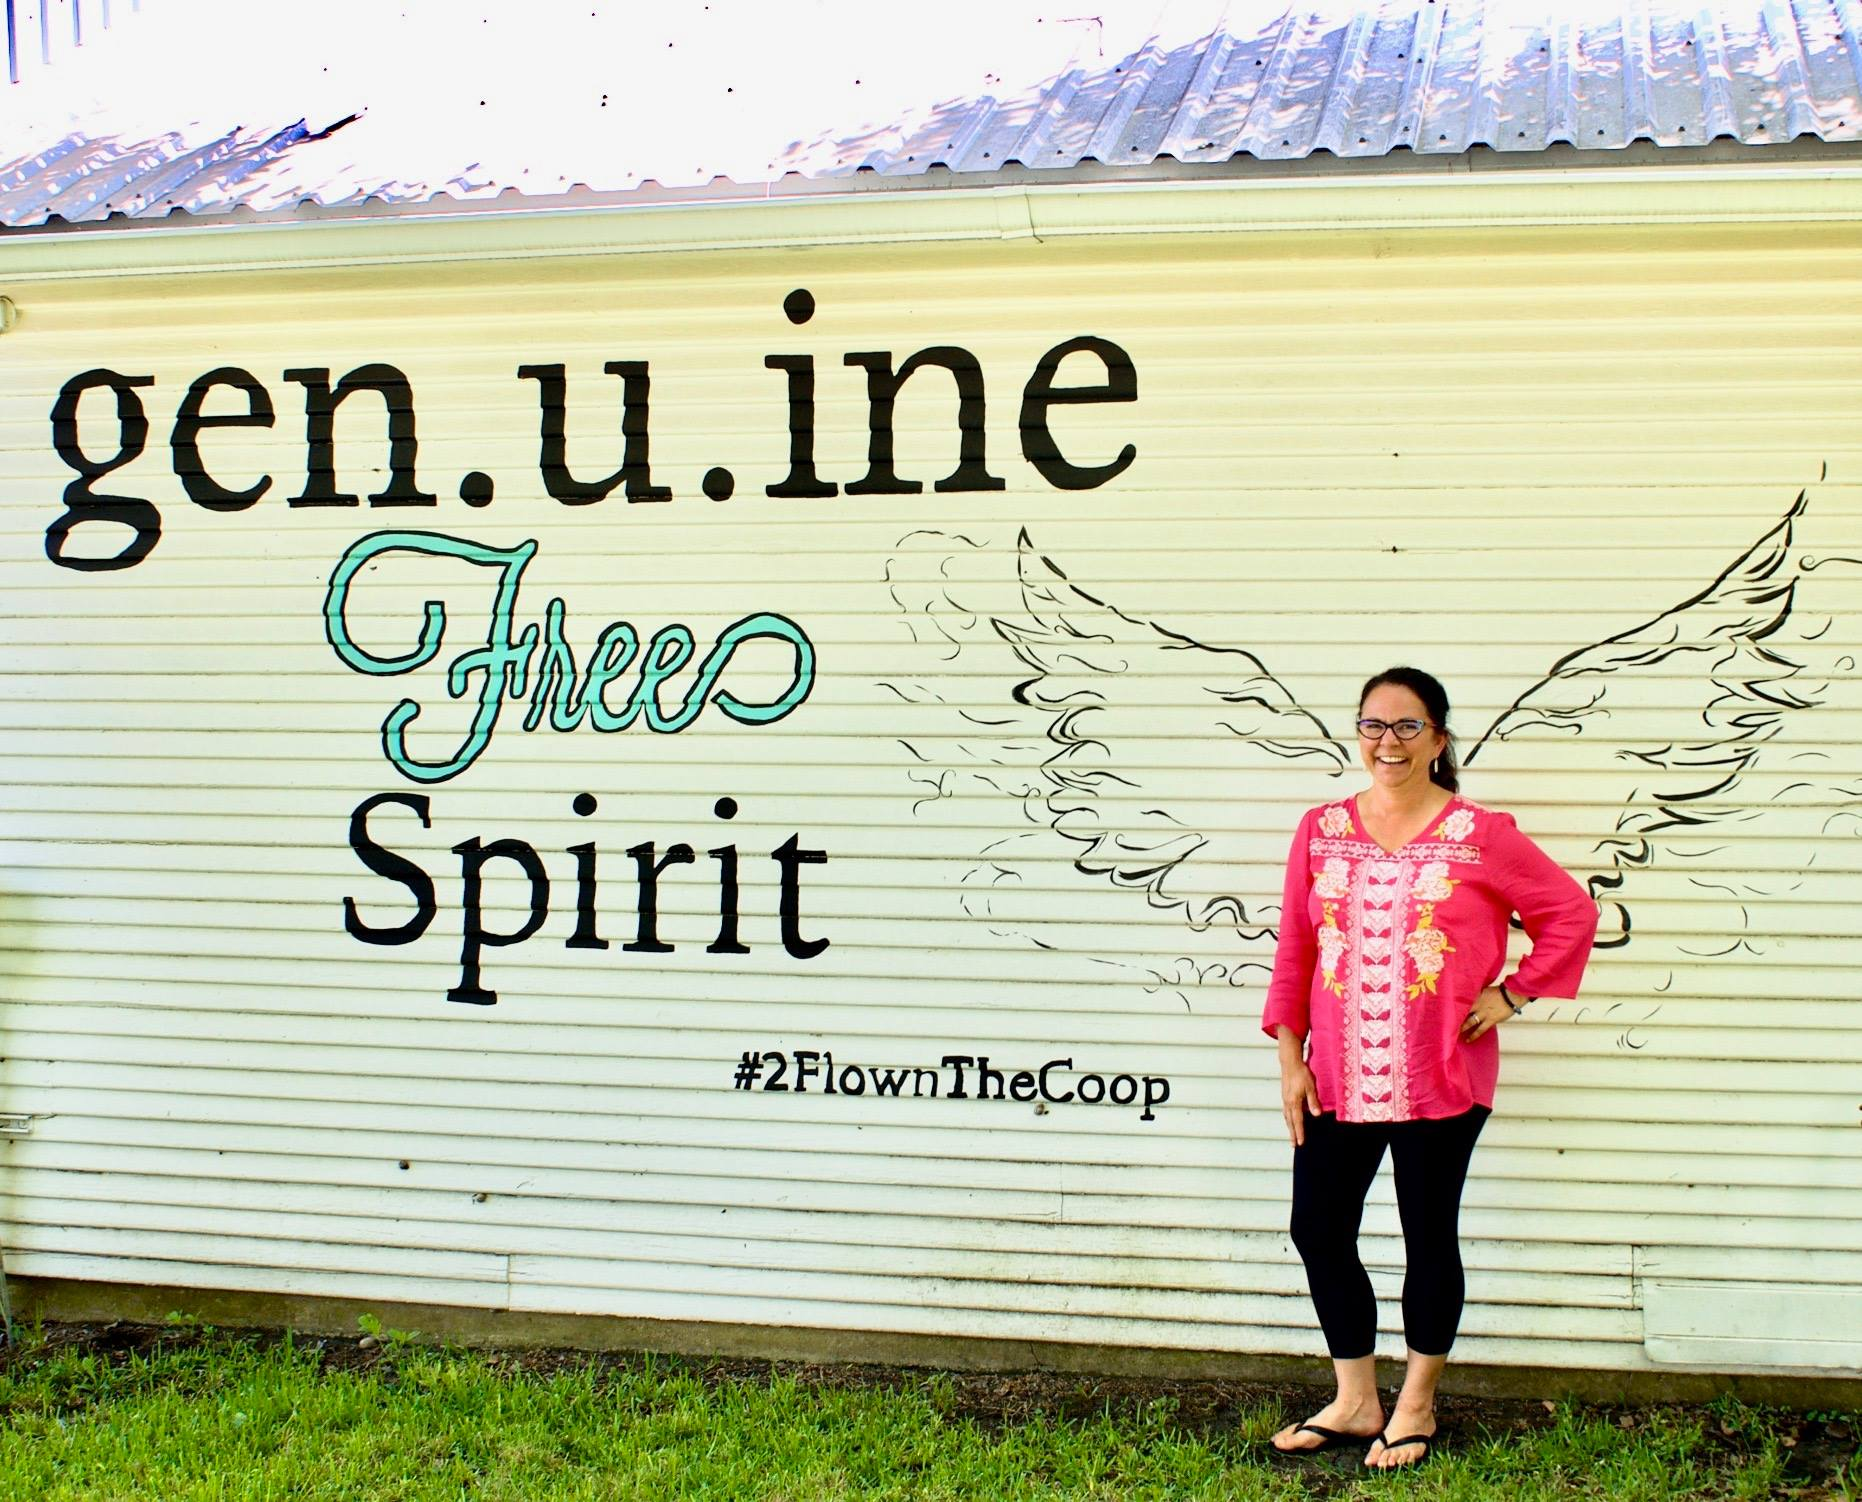 Flown The Coop's Tiffany loves her WINGS, and is excited about the future... especially the liquidation sale June 14-16